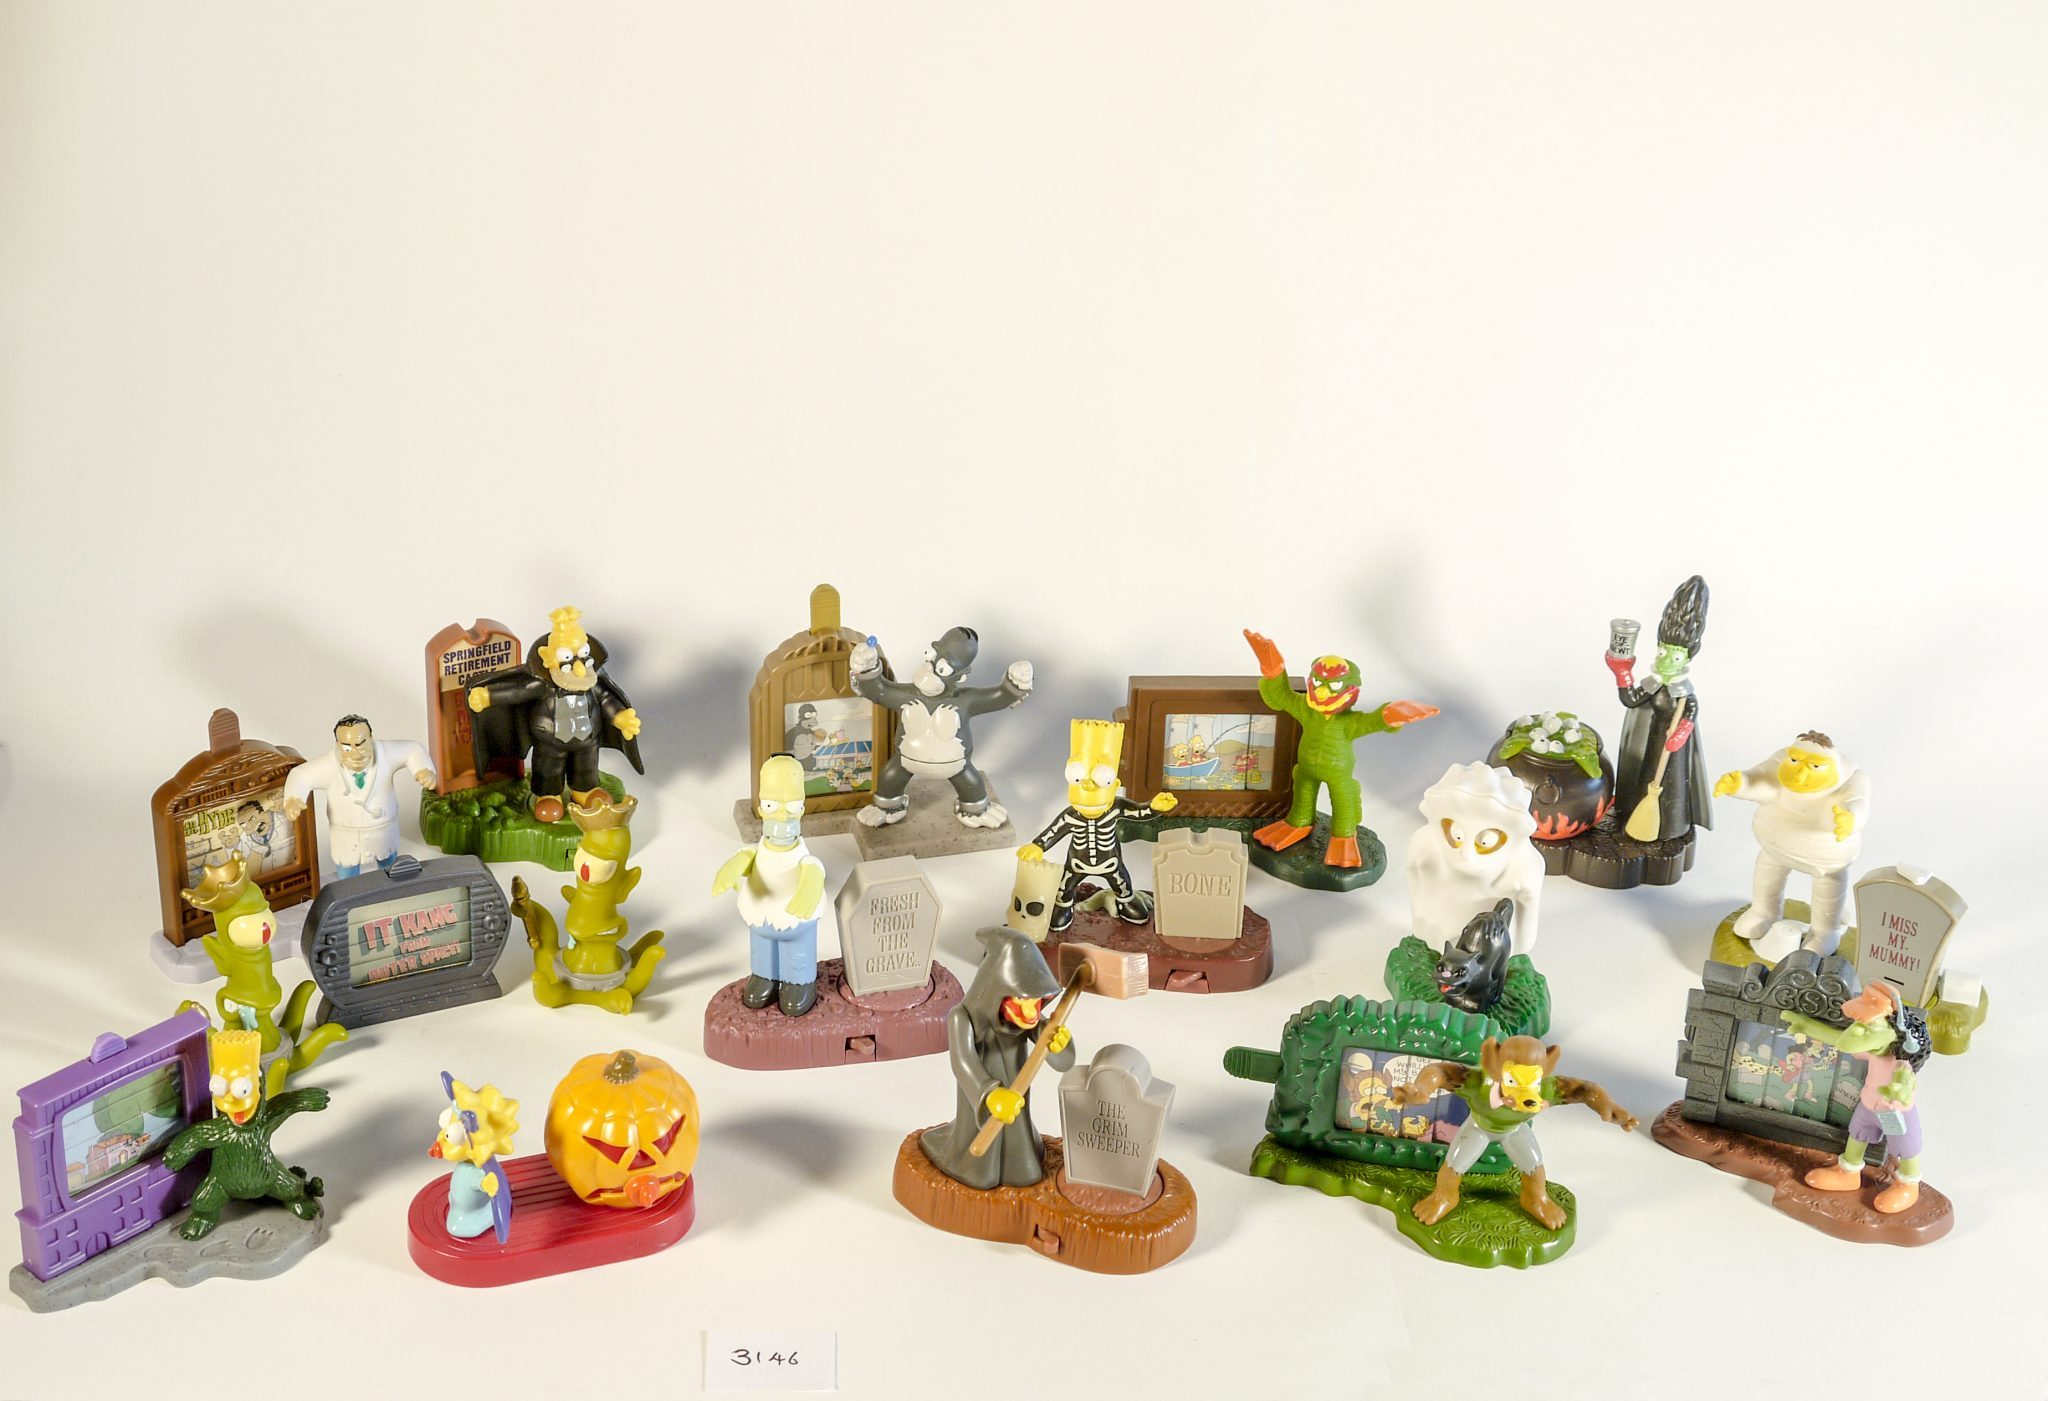 3146 – Simpsons Tree House of Horror figures  A set of Halloween plastic  figures deb77fdc9